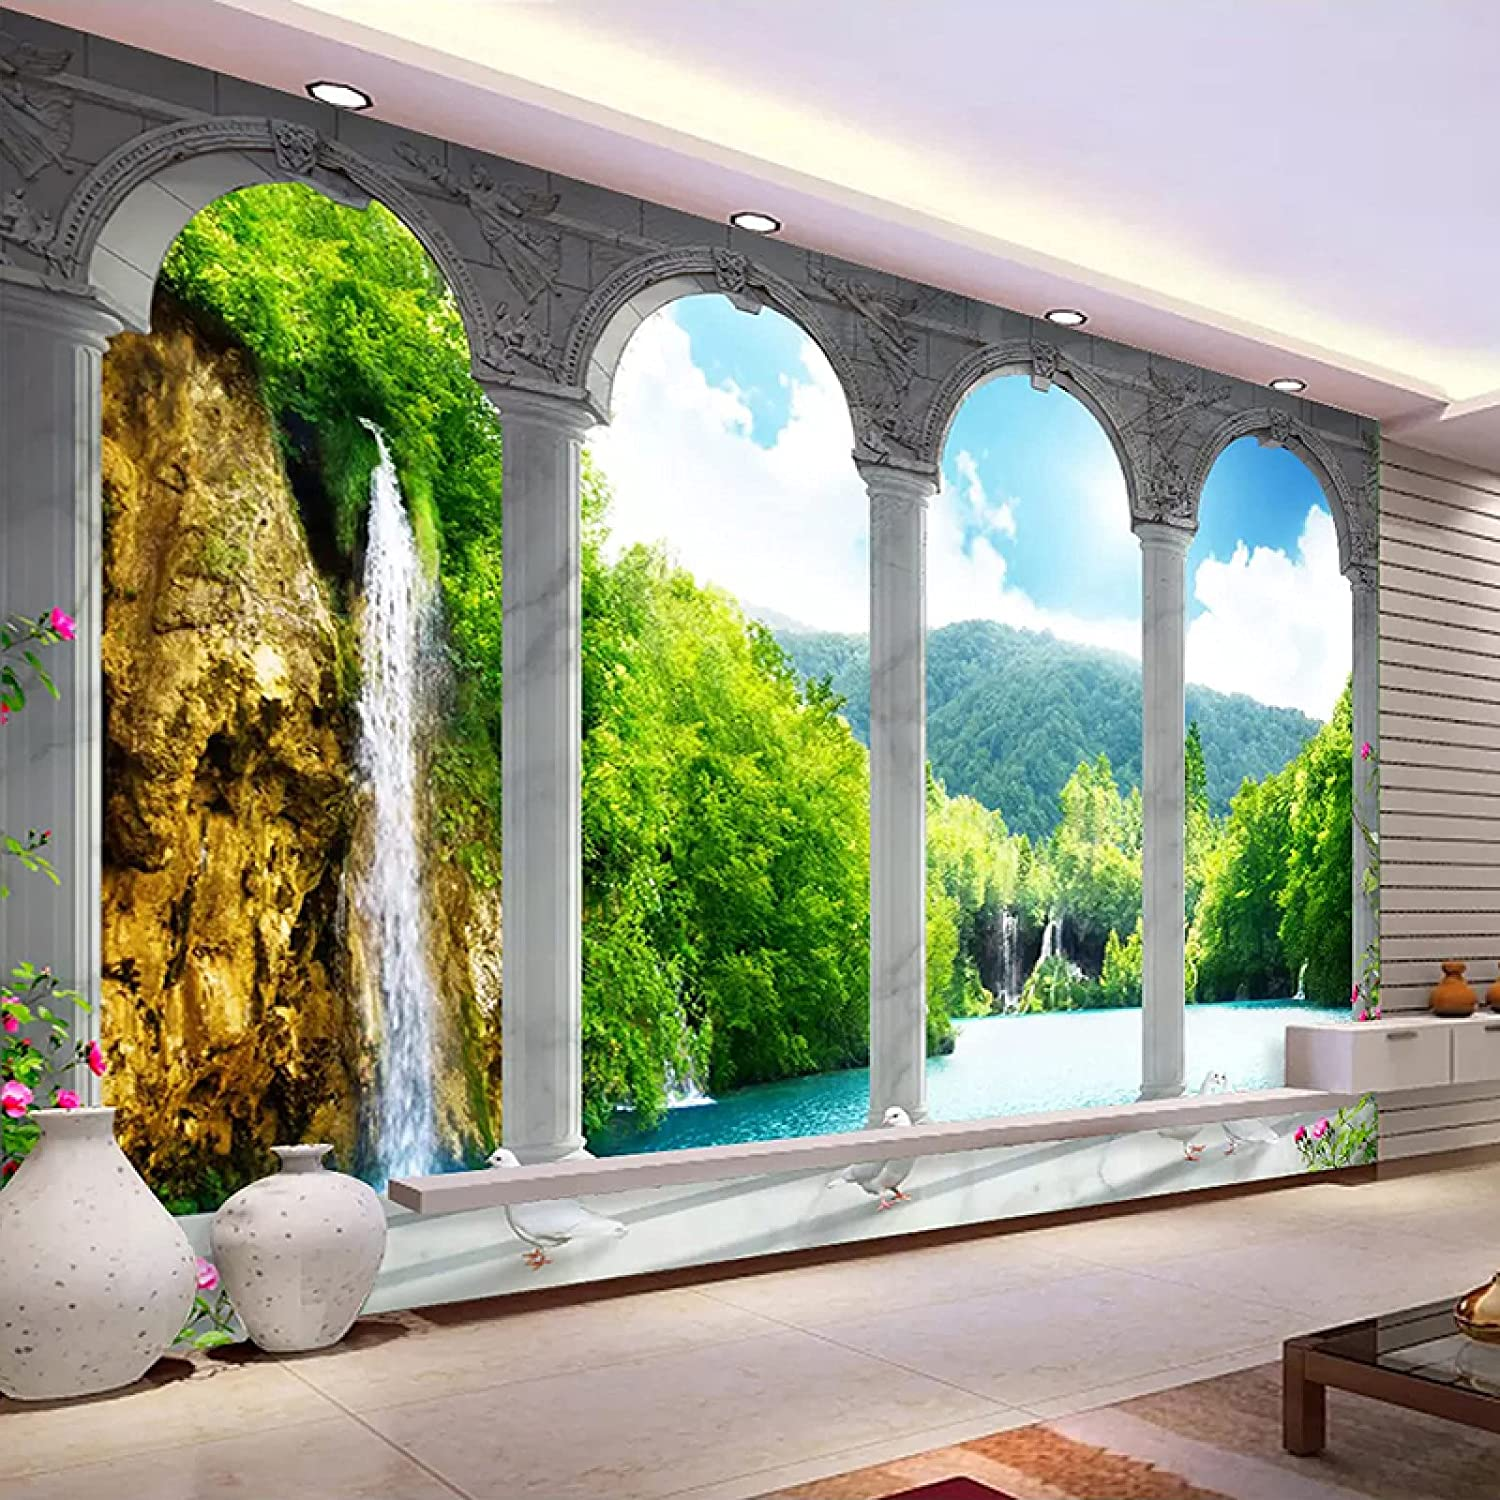 HUIJIE Nature Landscape Photo Industry No. 1 Surprise price Wallpaper Custom Space Mural 3D -